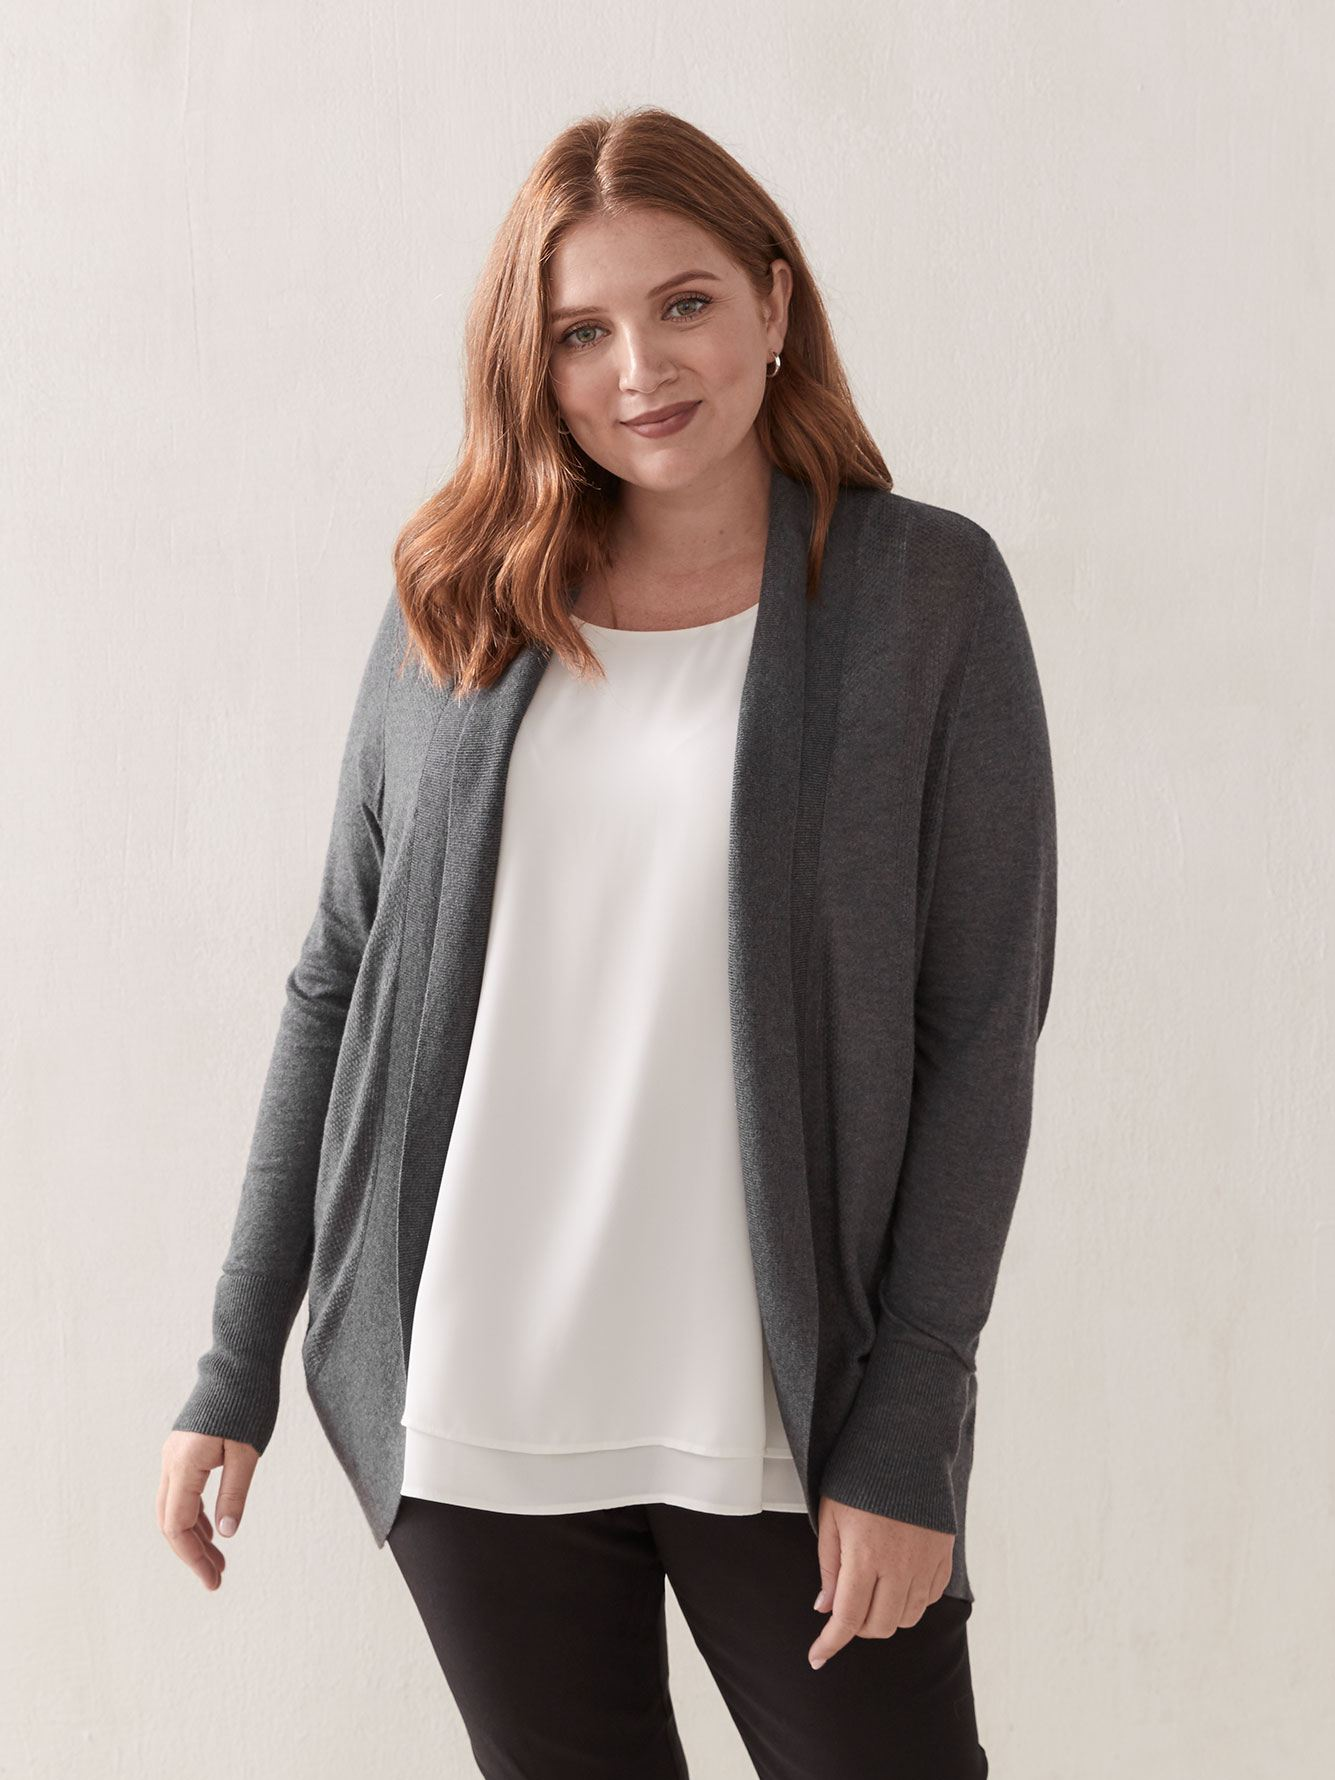 Open Knitted Cardigan with Shawl Collar - Addition Elle 13